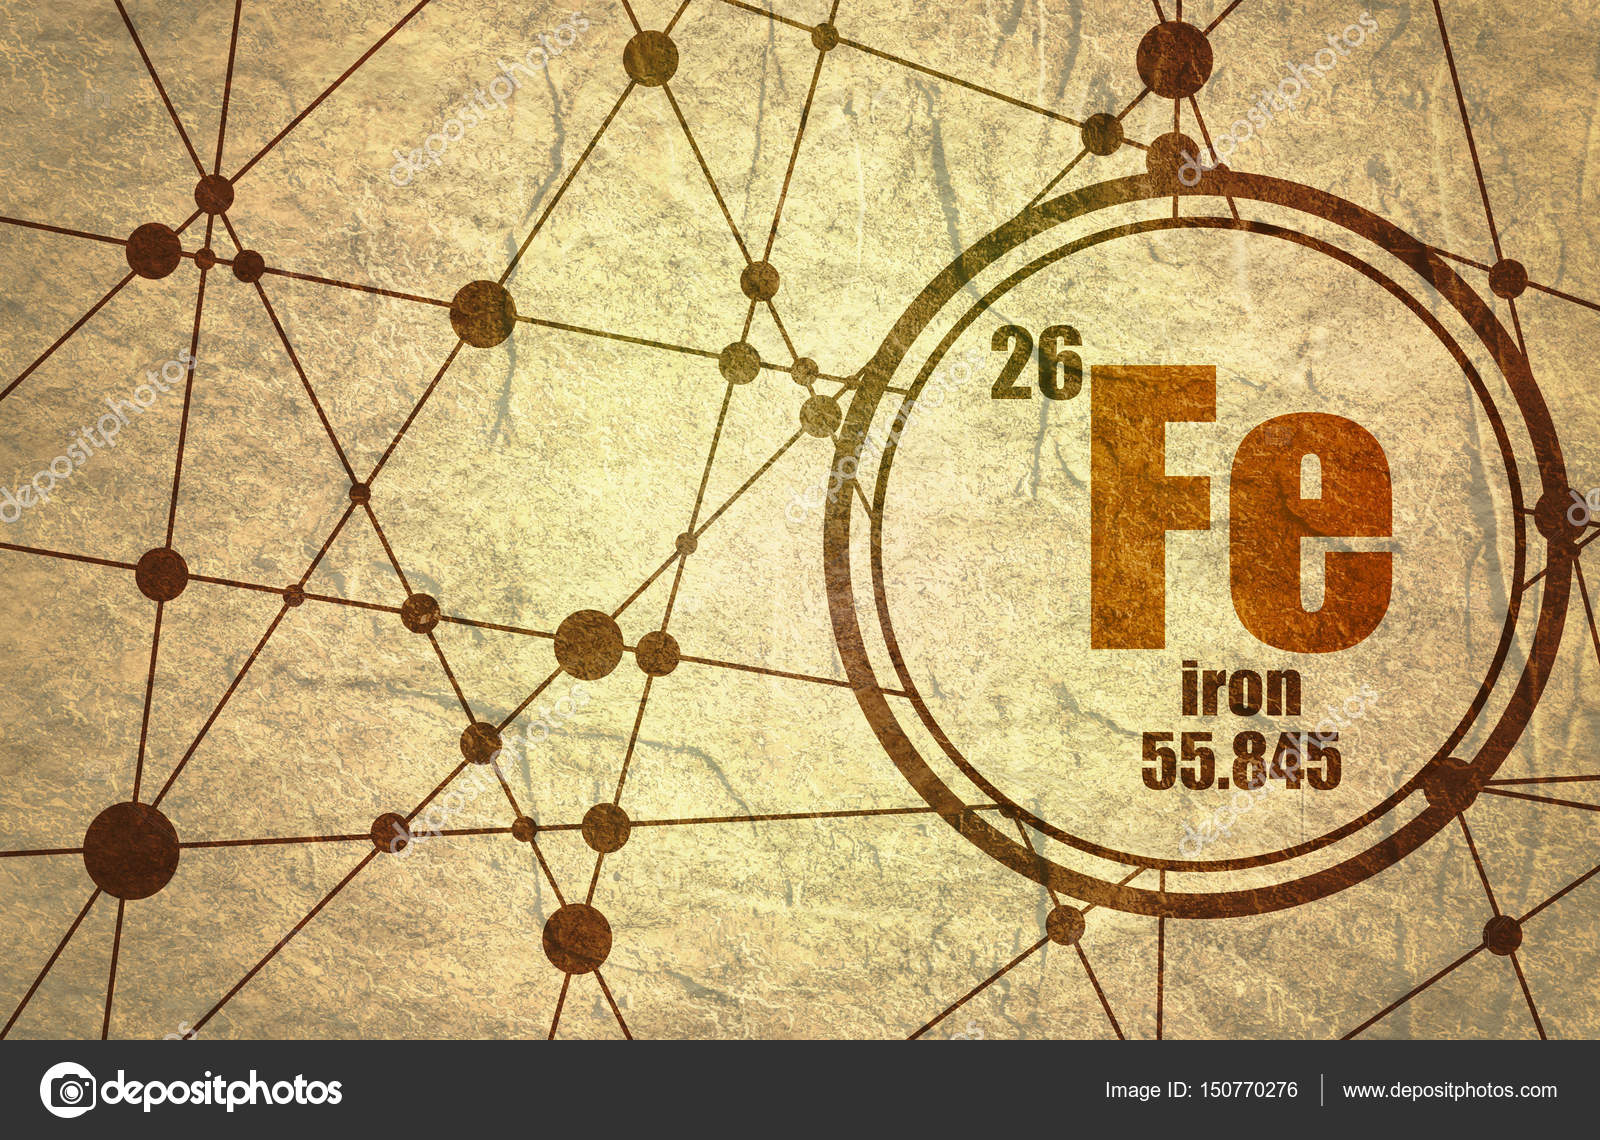 Iron chemical element stock photo jegasra 150770276 iron chemical element sign with atomic number and atomic weight chemical element of periodic table molecule and communication background urtaz Gallery